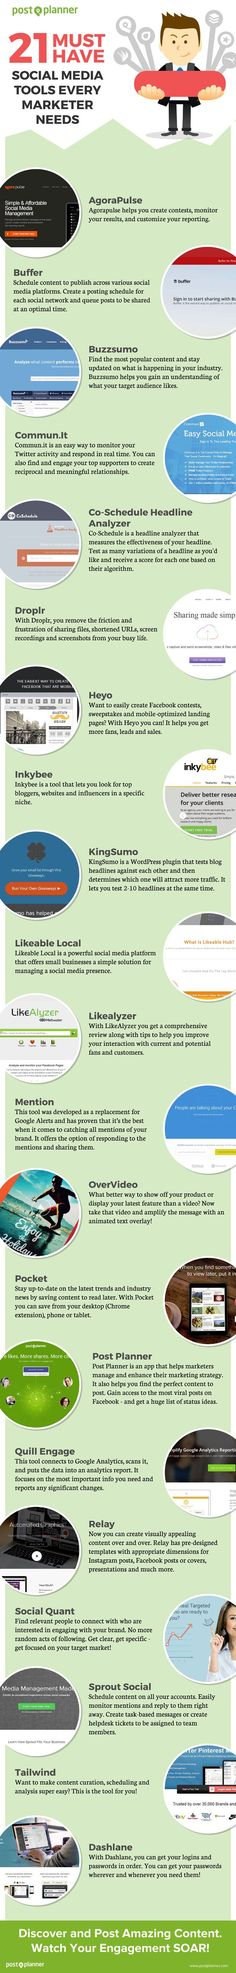 21 #SocialMedia Tools for Smart #Marketers [#infographic]